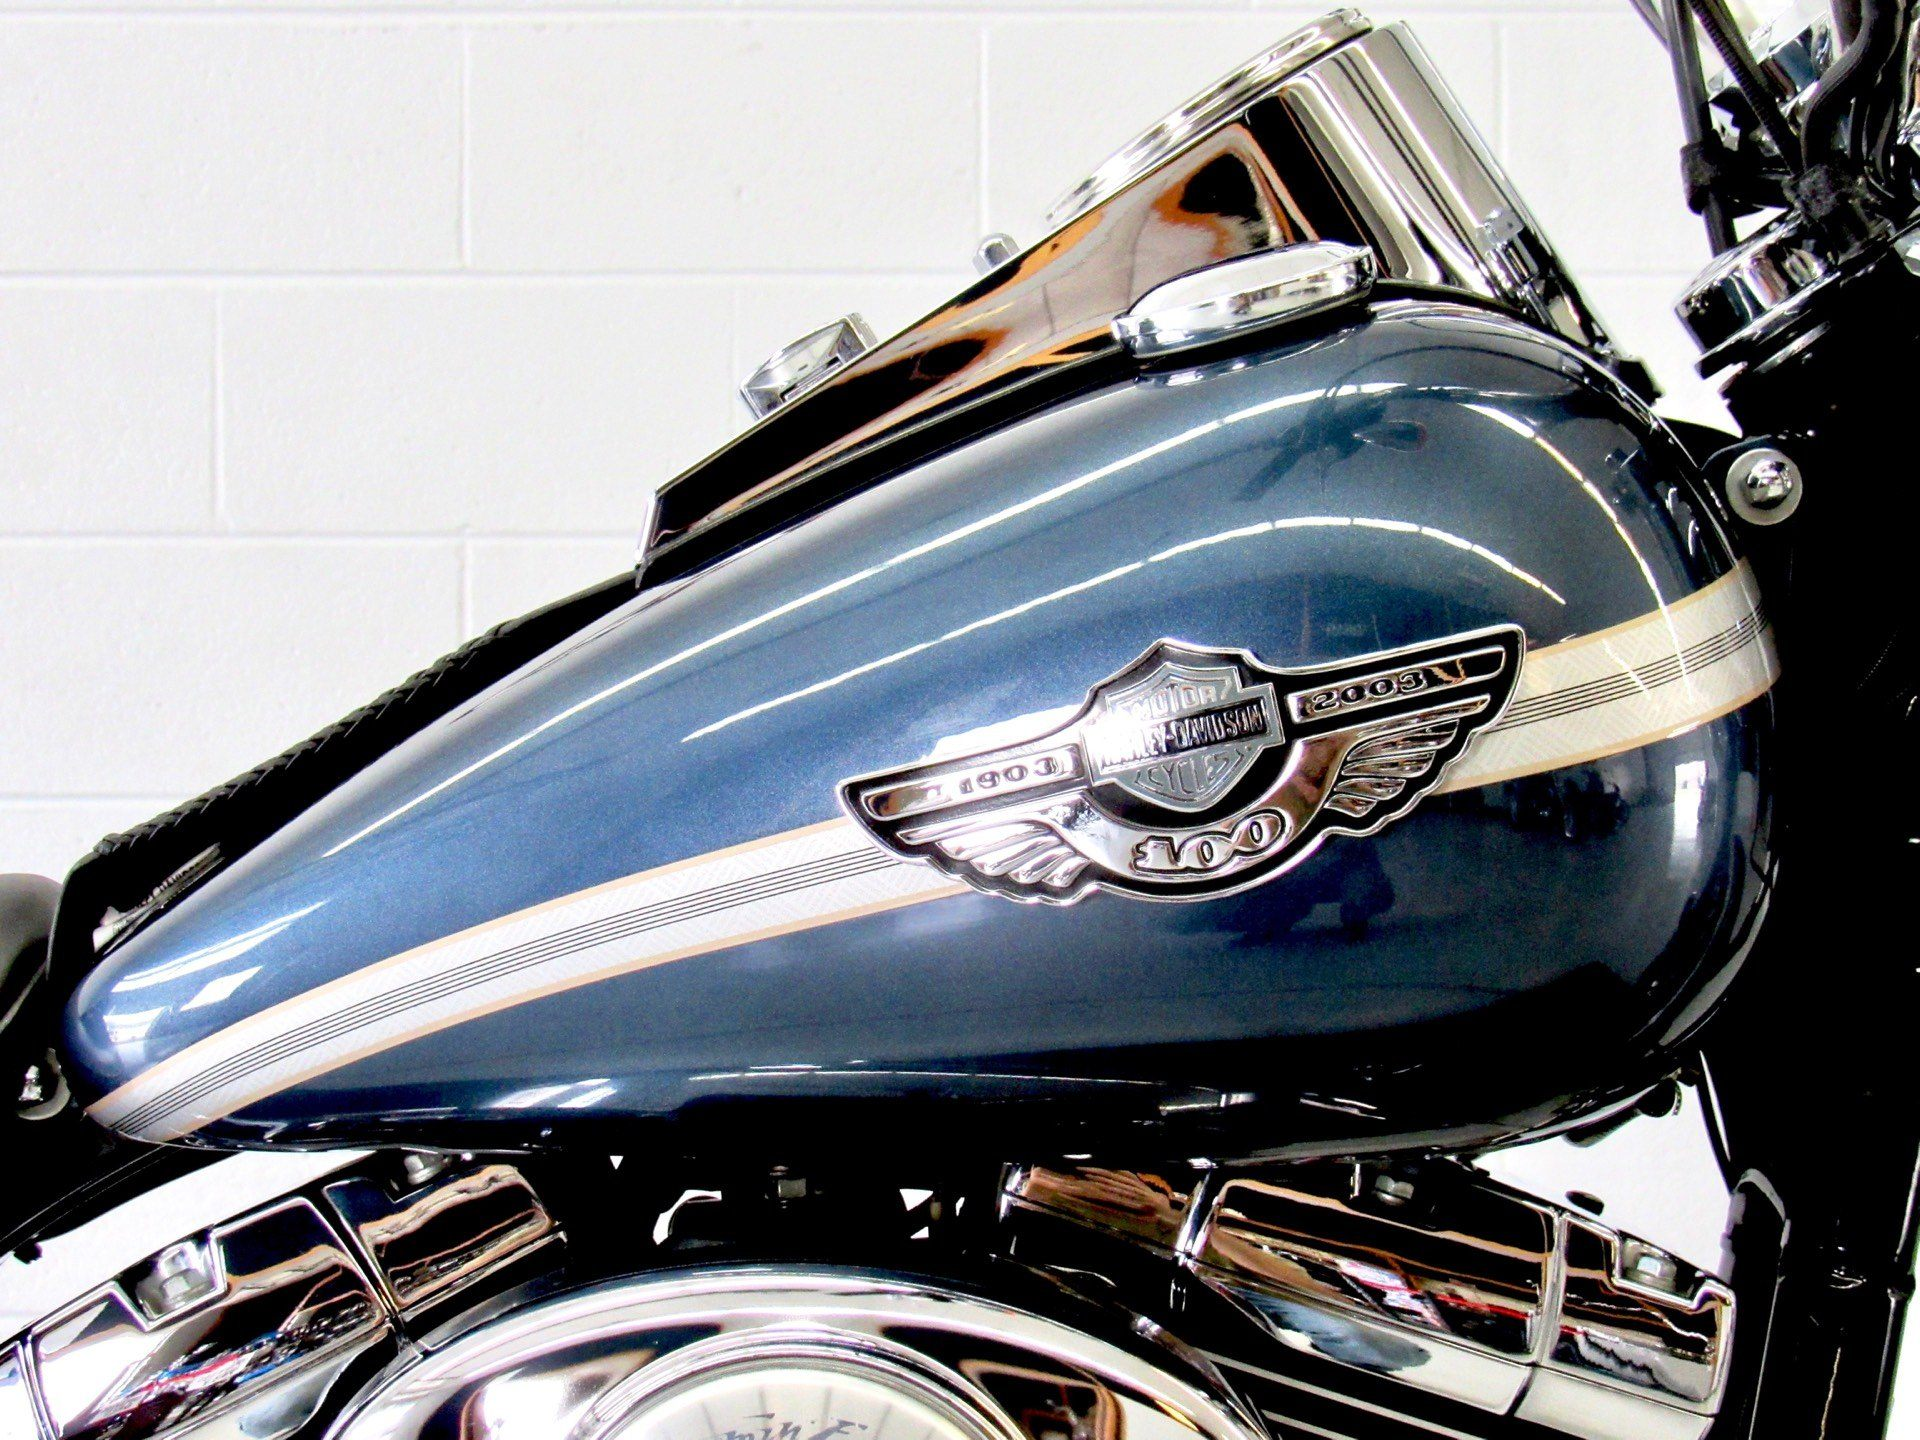 2003 Harley-Davidson FXDWG Dyna Wide Glide® in Fredericksburg, Virginia - Photo 13